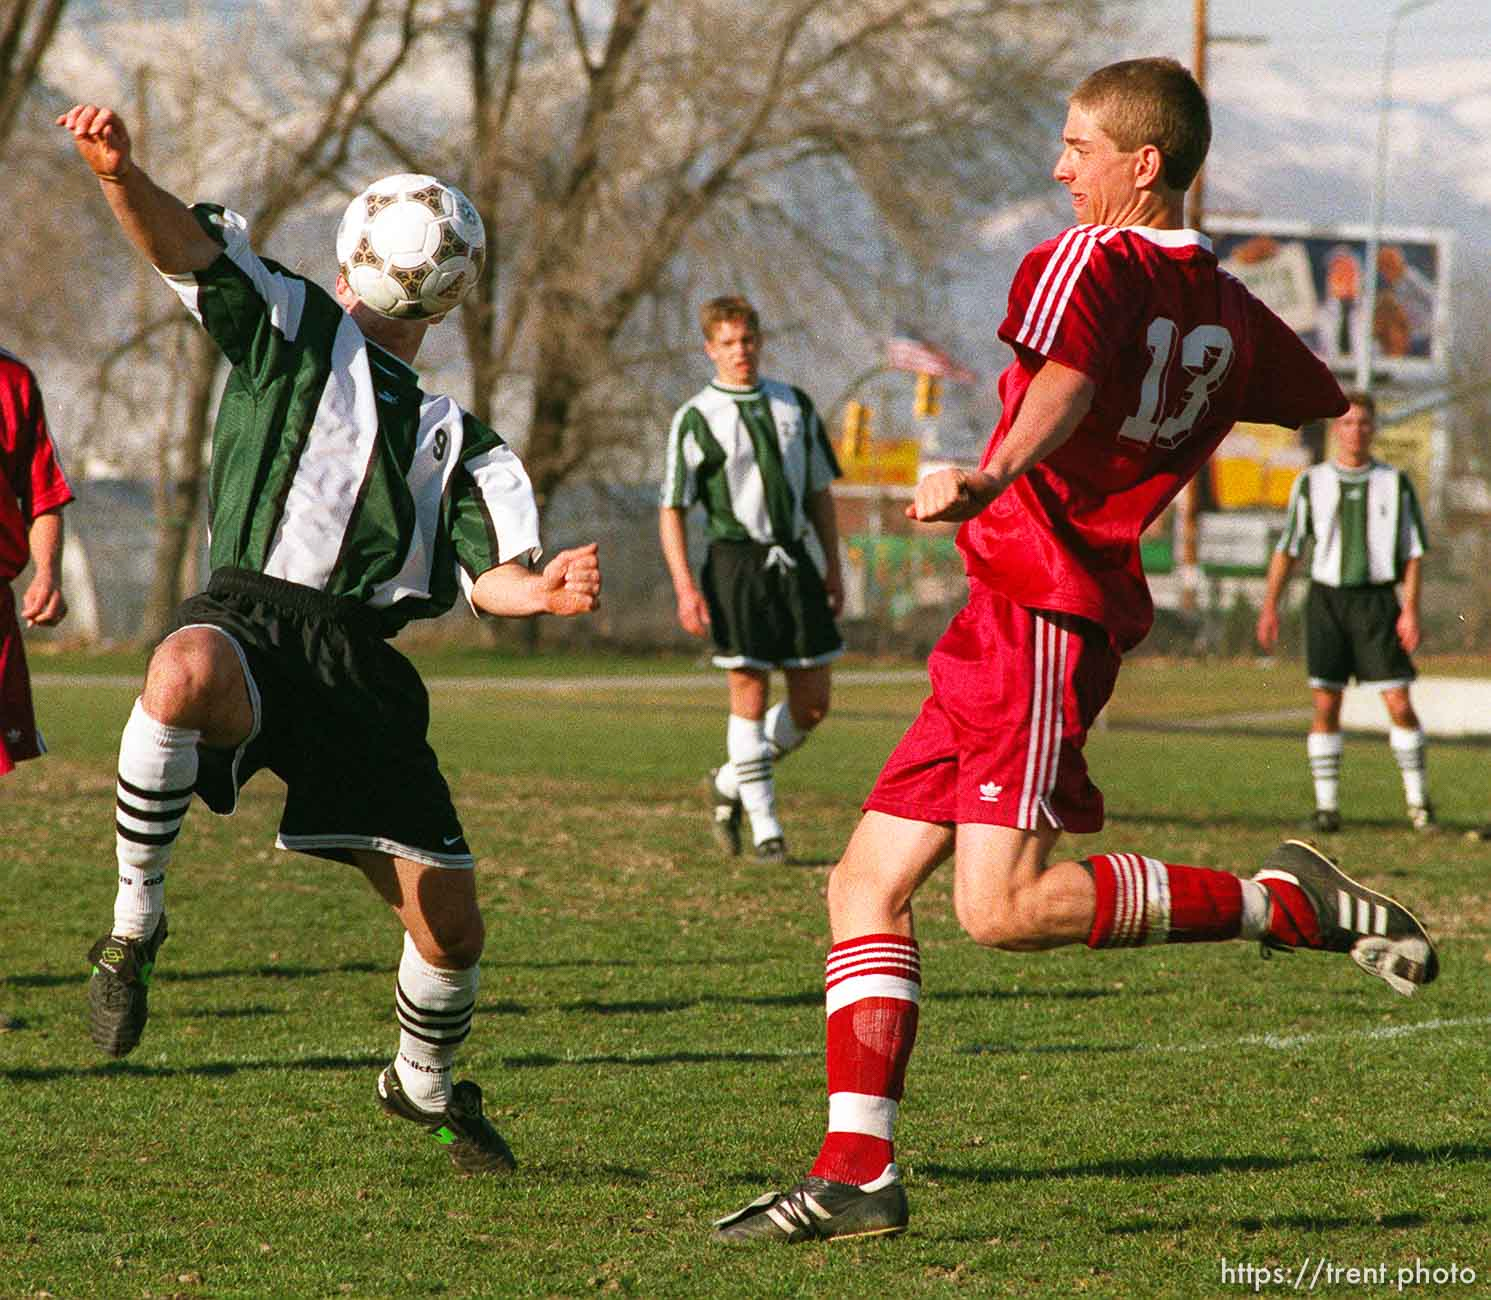 Mountain View HS at Hillcrest HS soccer. Ball head. Hillcrest's James Crowley (left) and MV's Brad or Tim Johnson (there were two #13's).